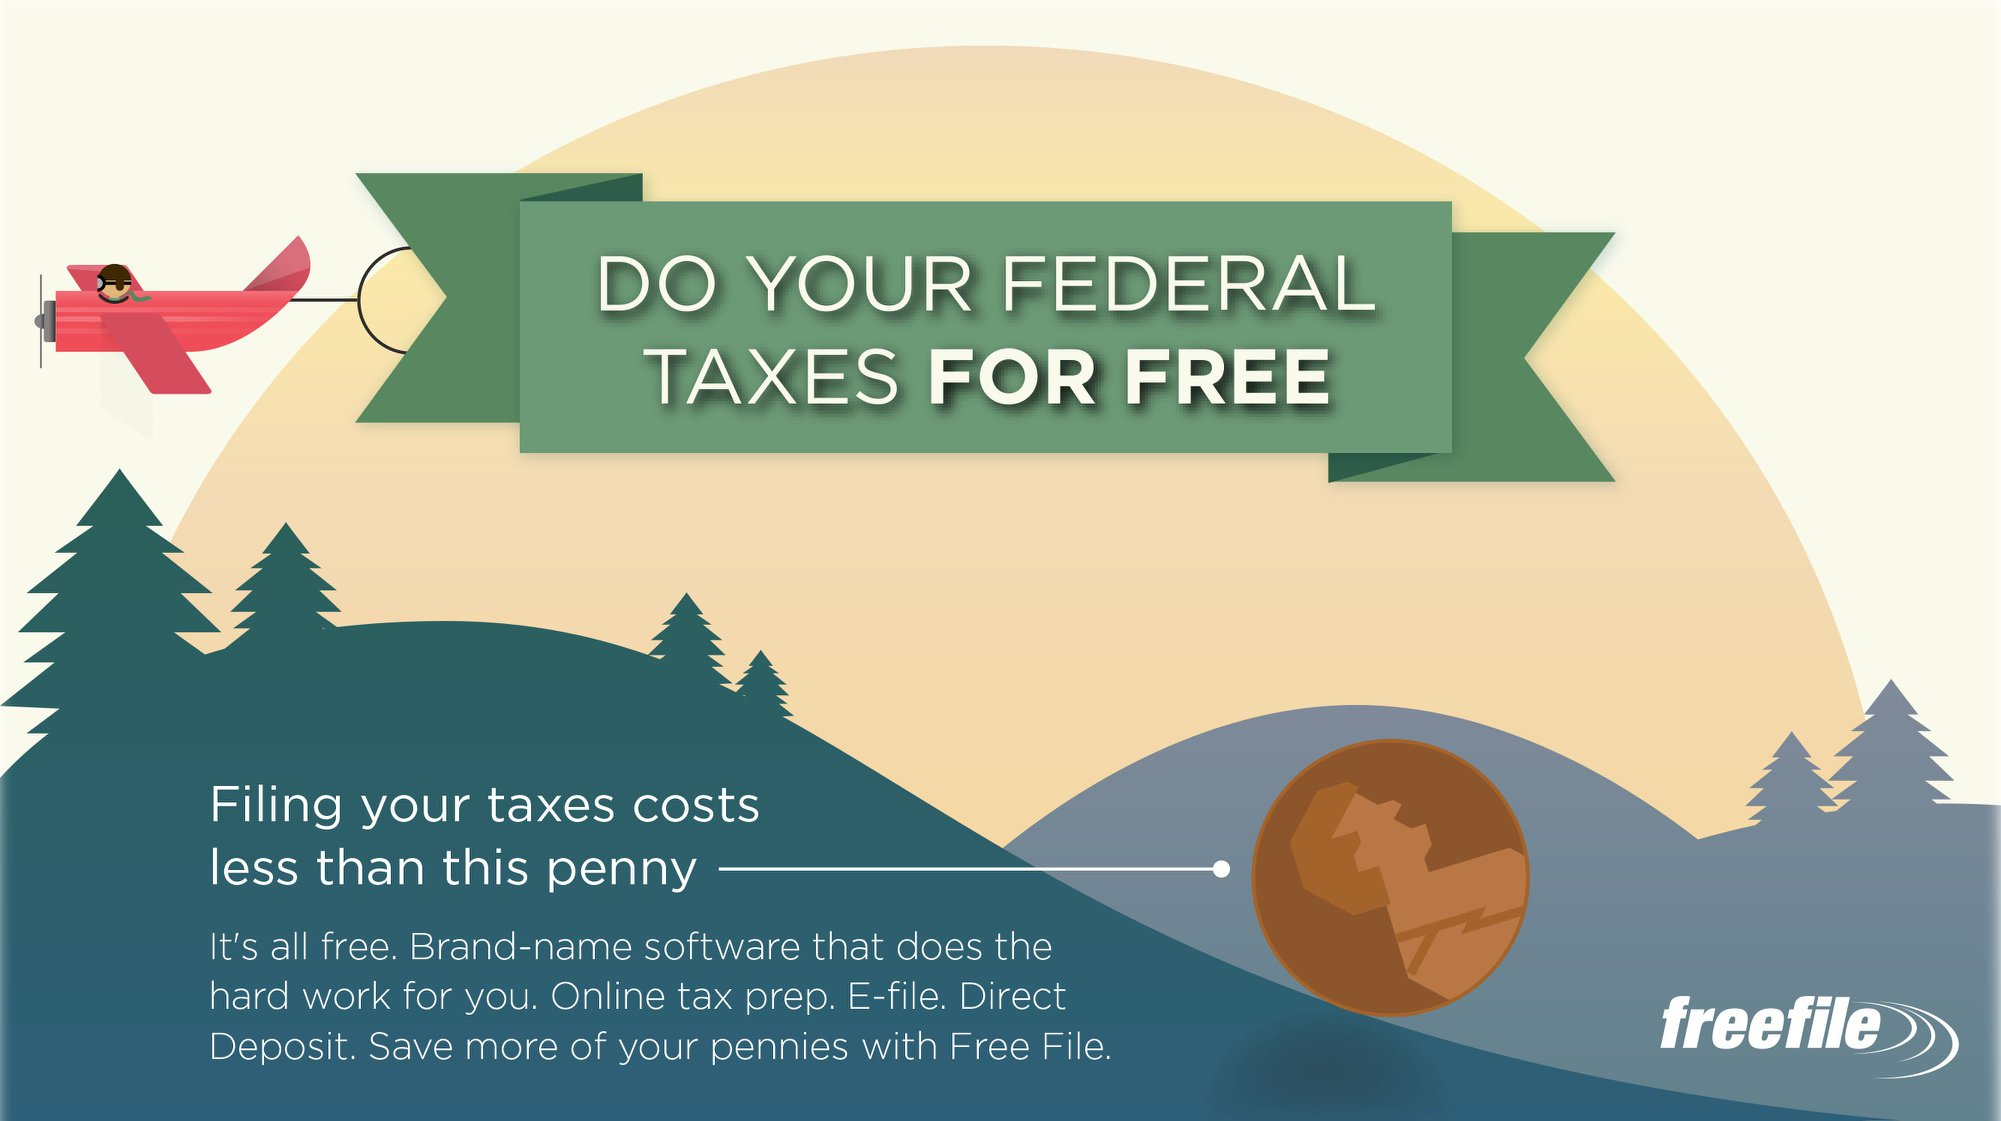 https://apps.irs.gov/app/freeFile/